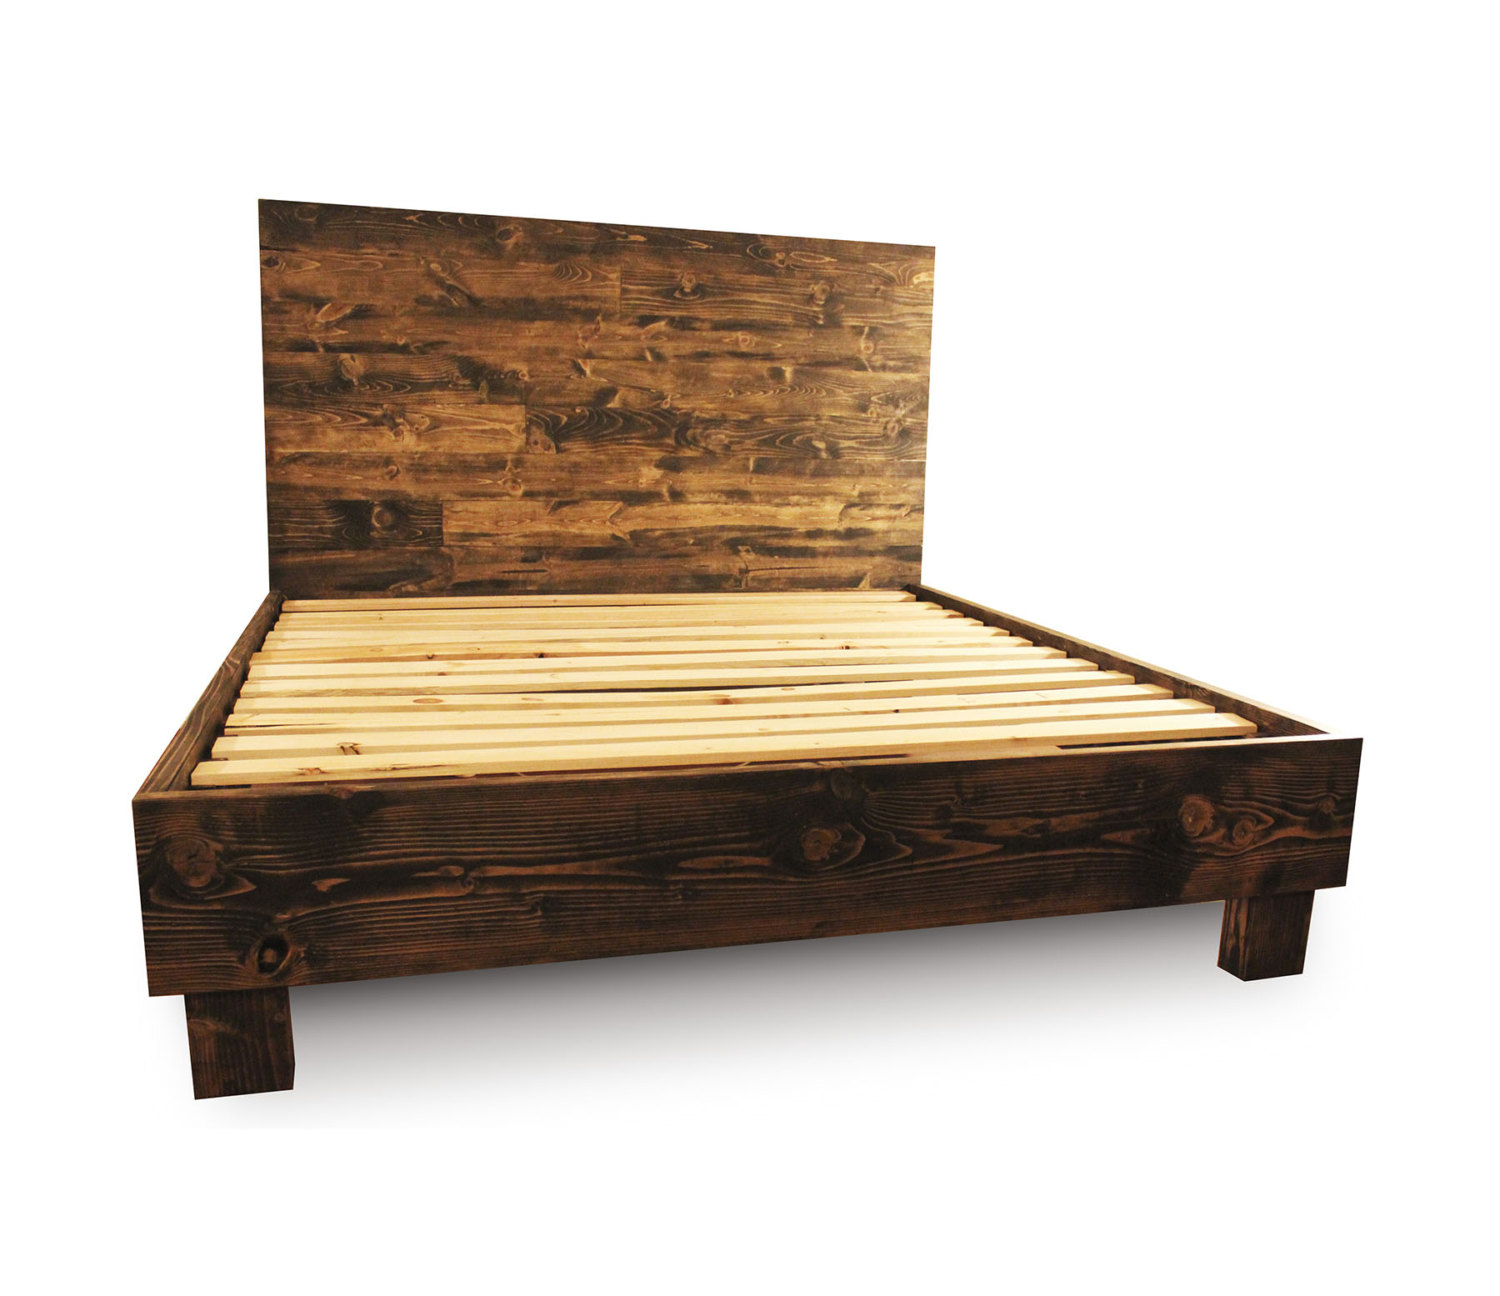 Collection wooden bed frames full size of bed frames:solid wood full size headboard rustic wood beds raqqkpr